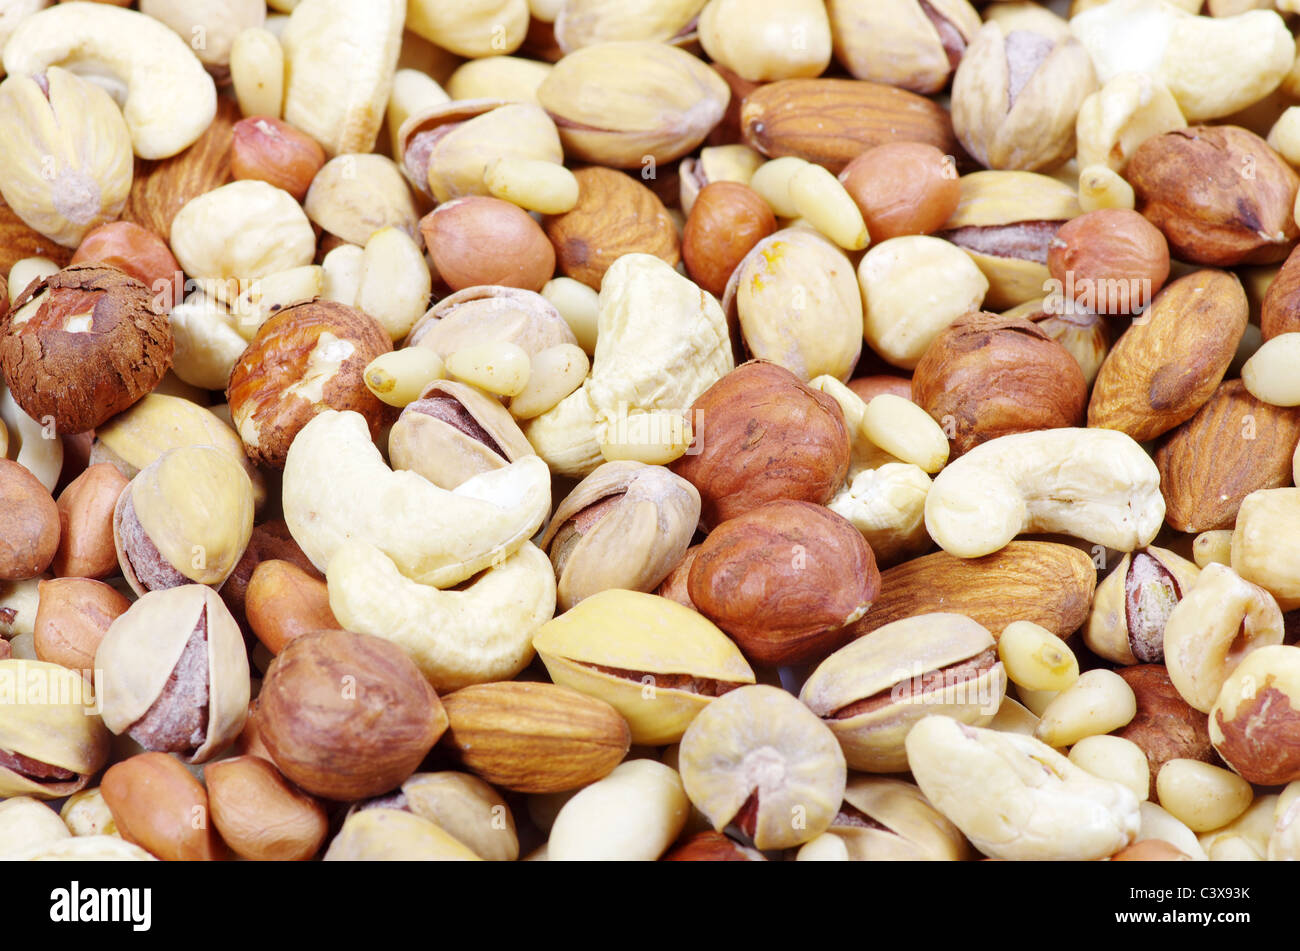 mixed nuts on a background - Stock Image